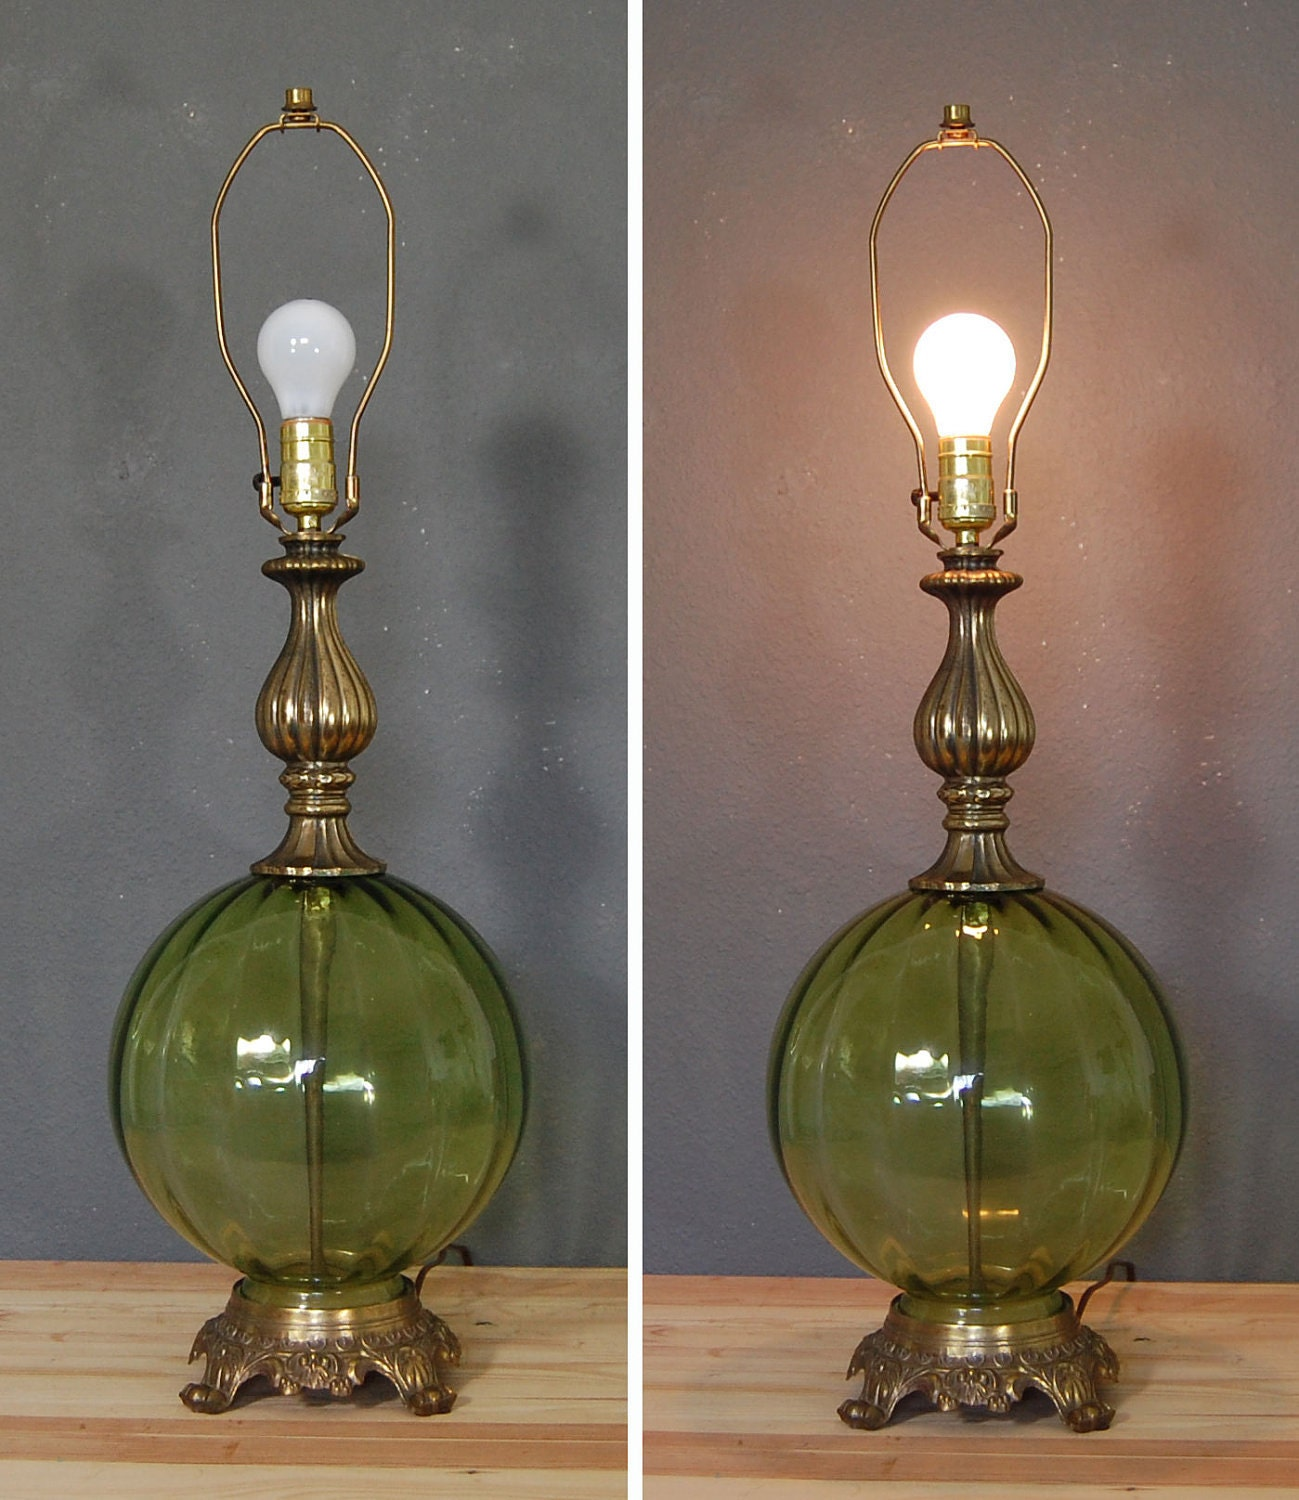 Vintage Table Lamp Green Glass Lamp By Naturalstatevintage